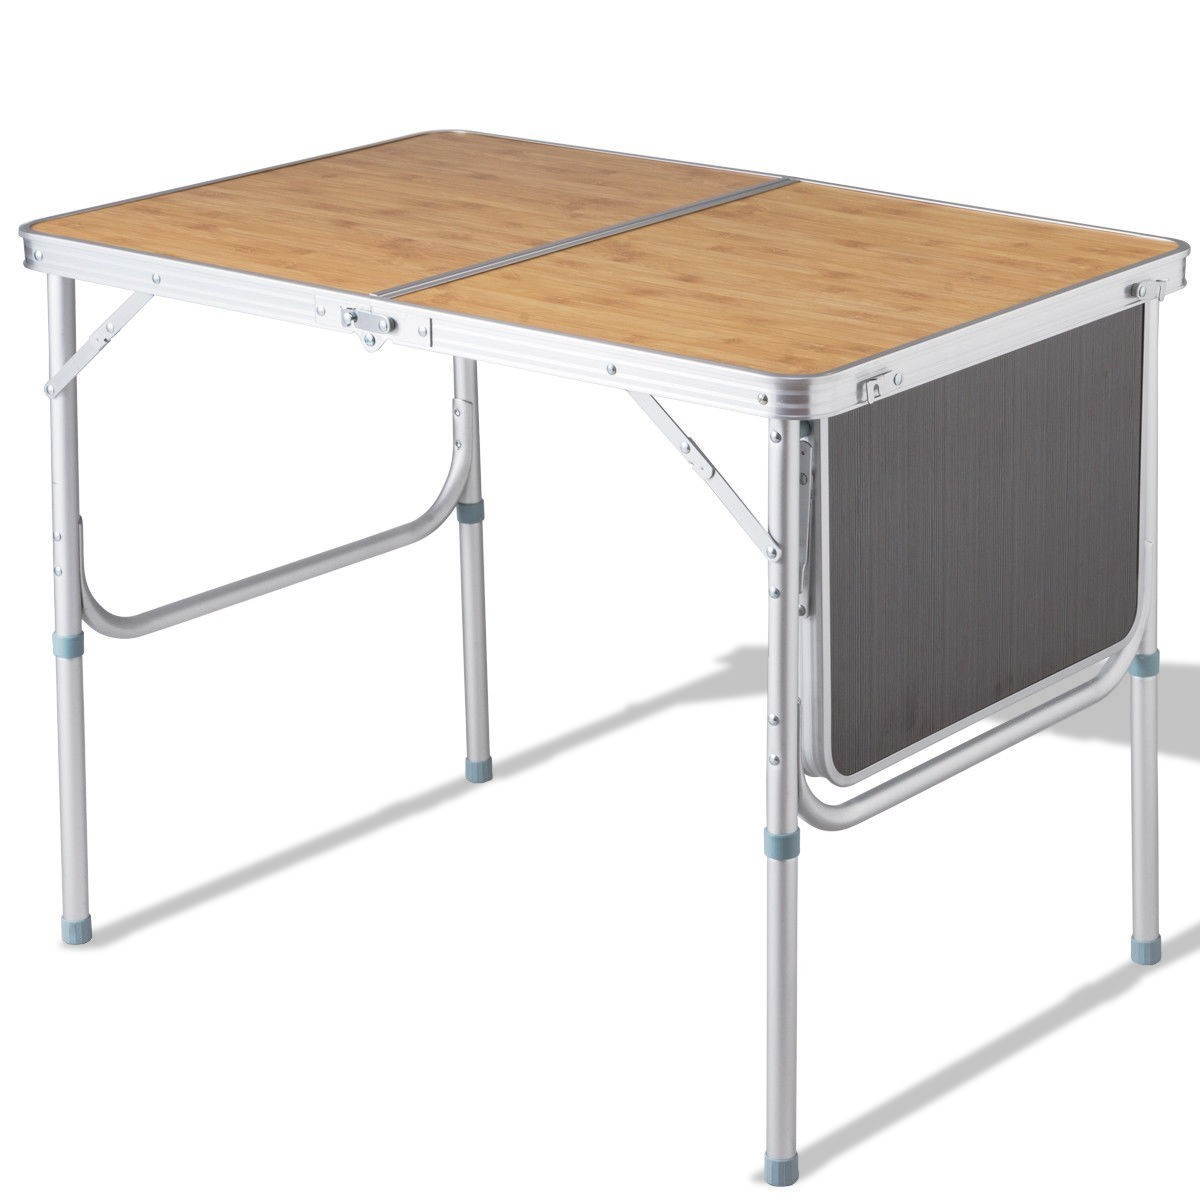 Aluminum Folding Picnic Camping Table with MDF Table Top by